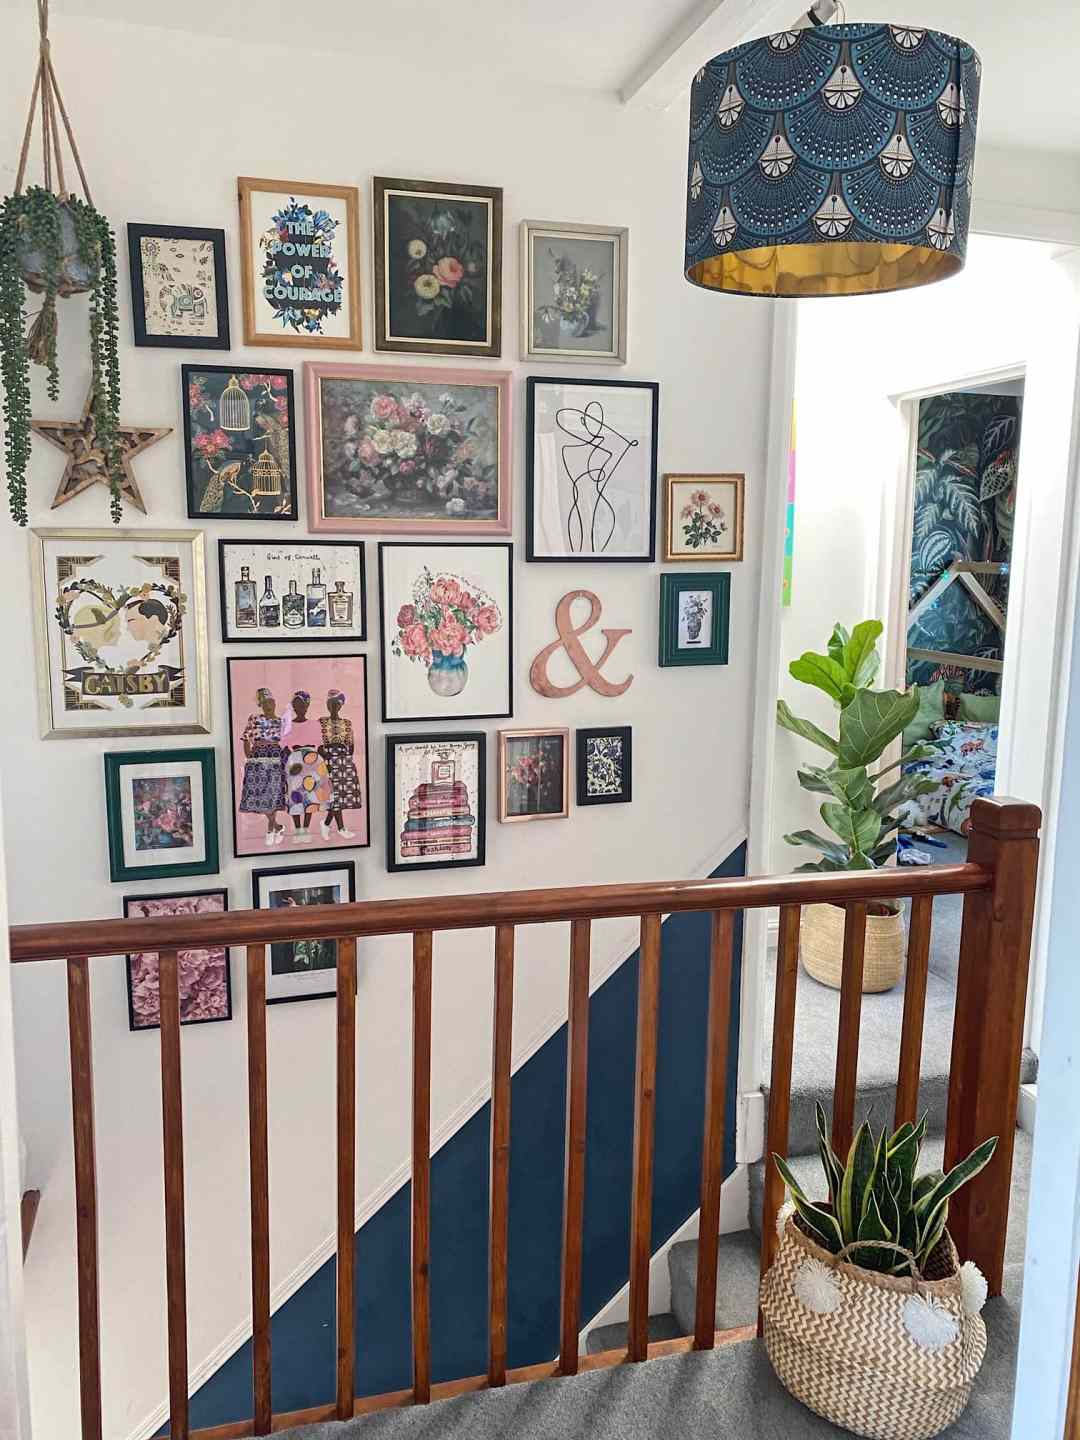 10 Easy Steps to Putting Up a Gallery Wall